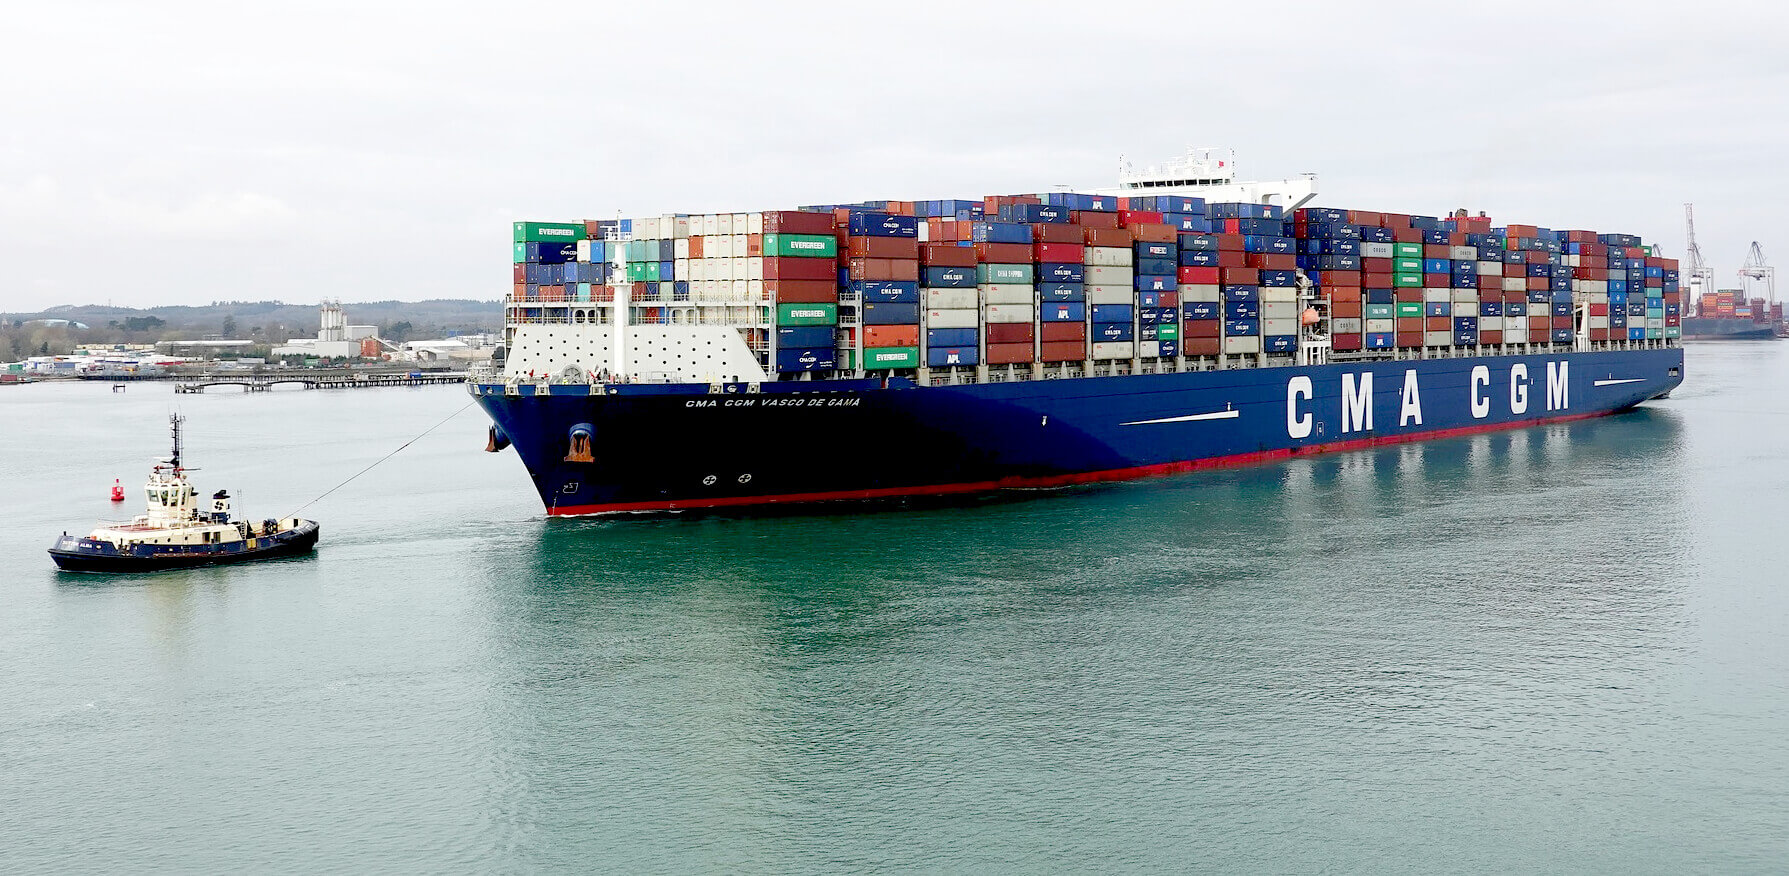 MSC rapidly expands its fleet of container ships. Is Maersk about to be dethroned?